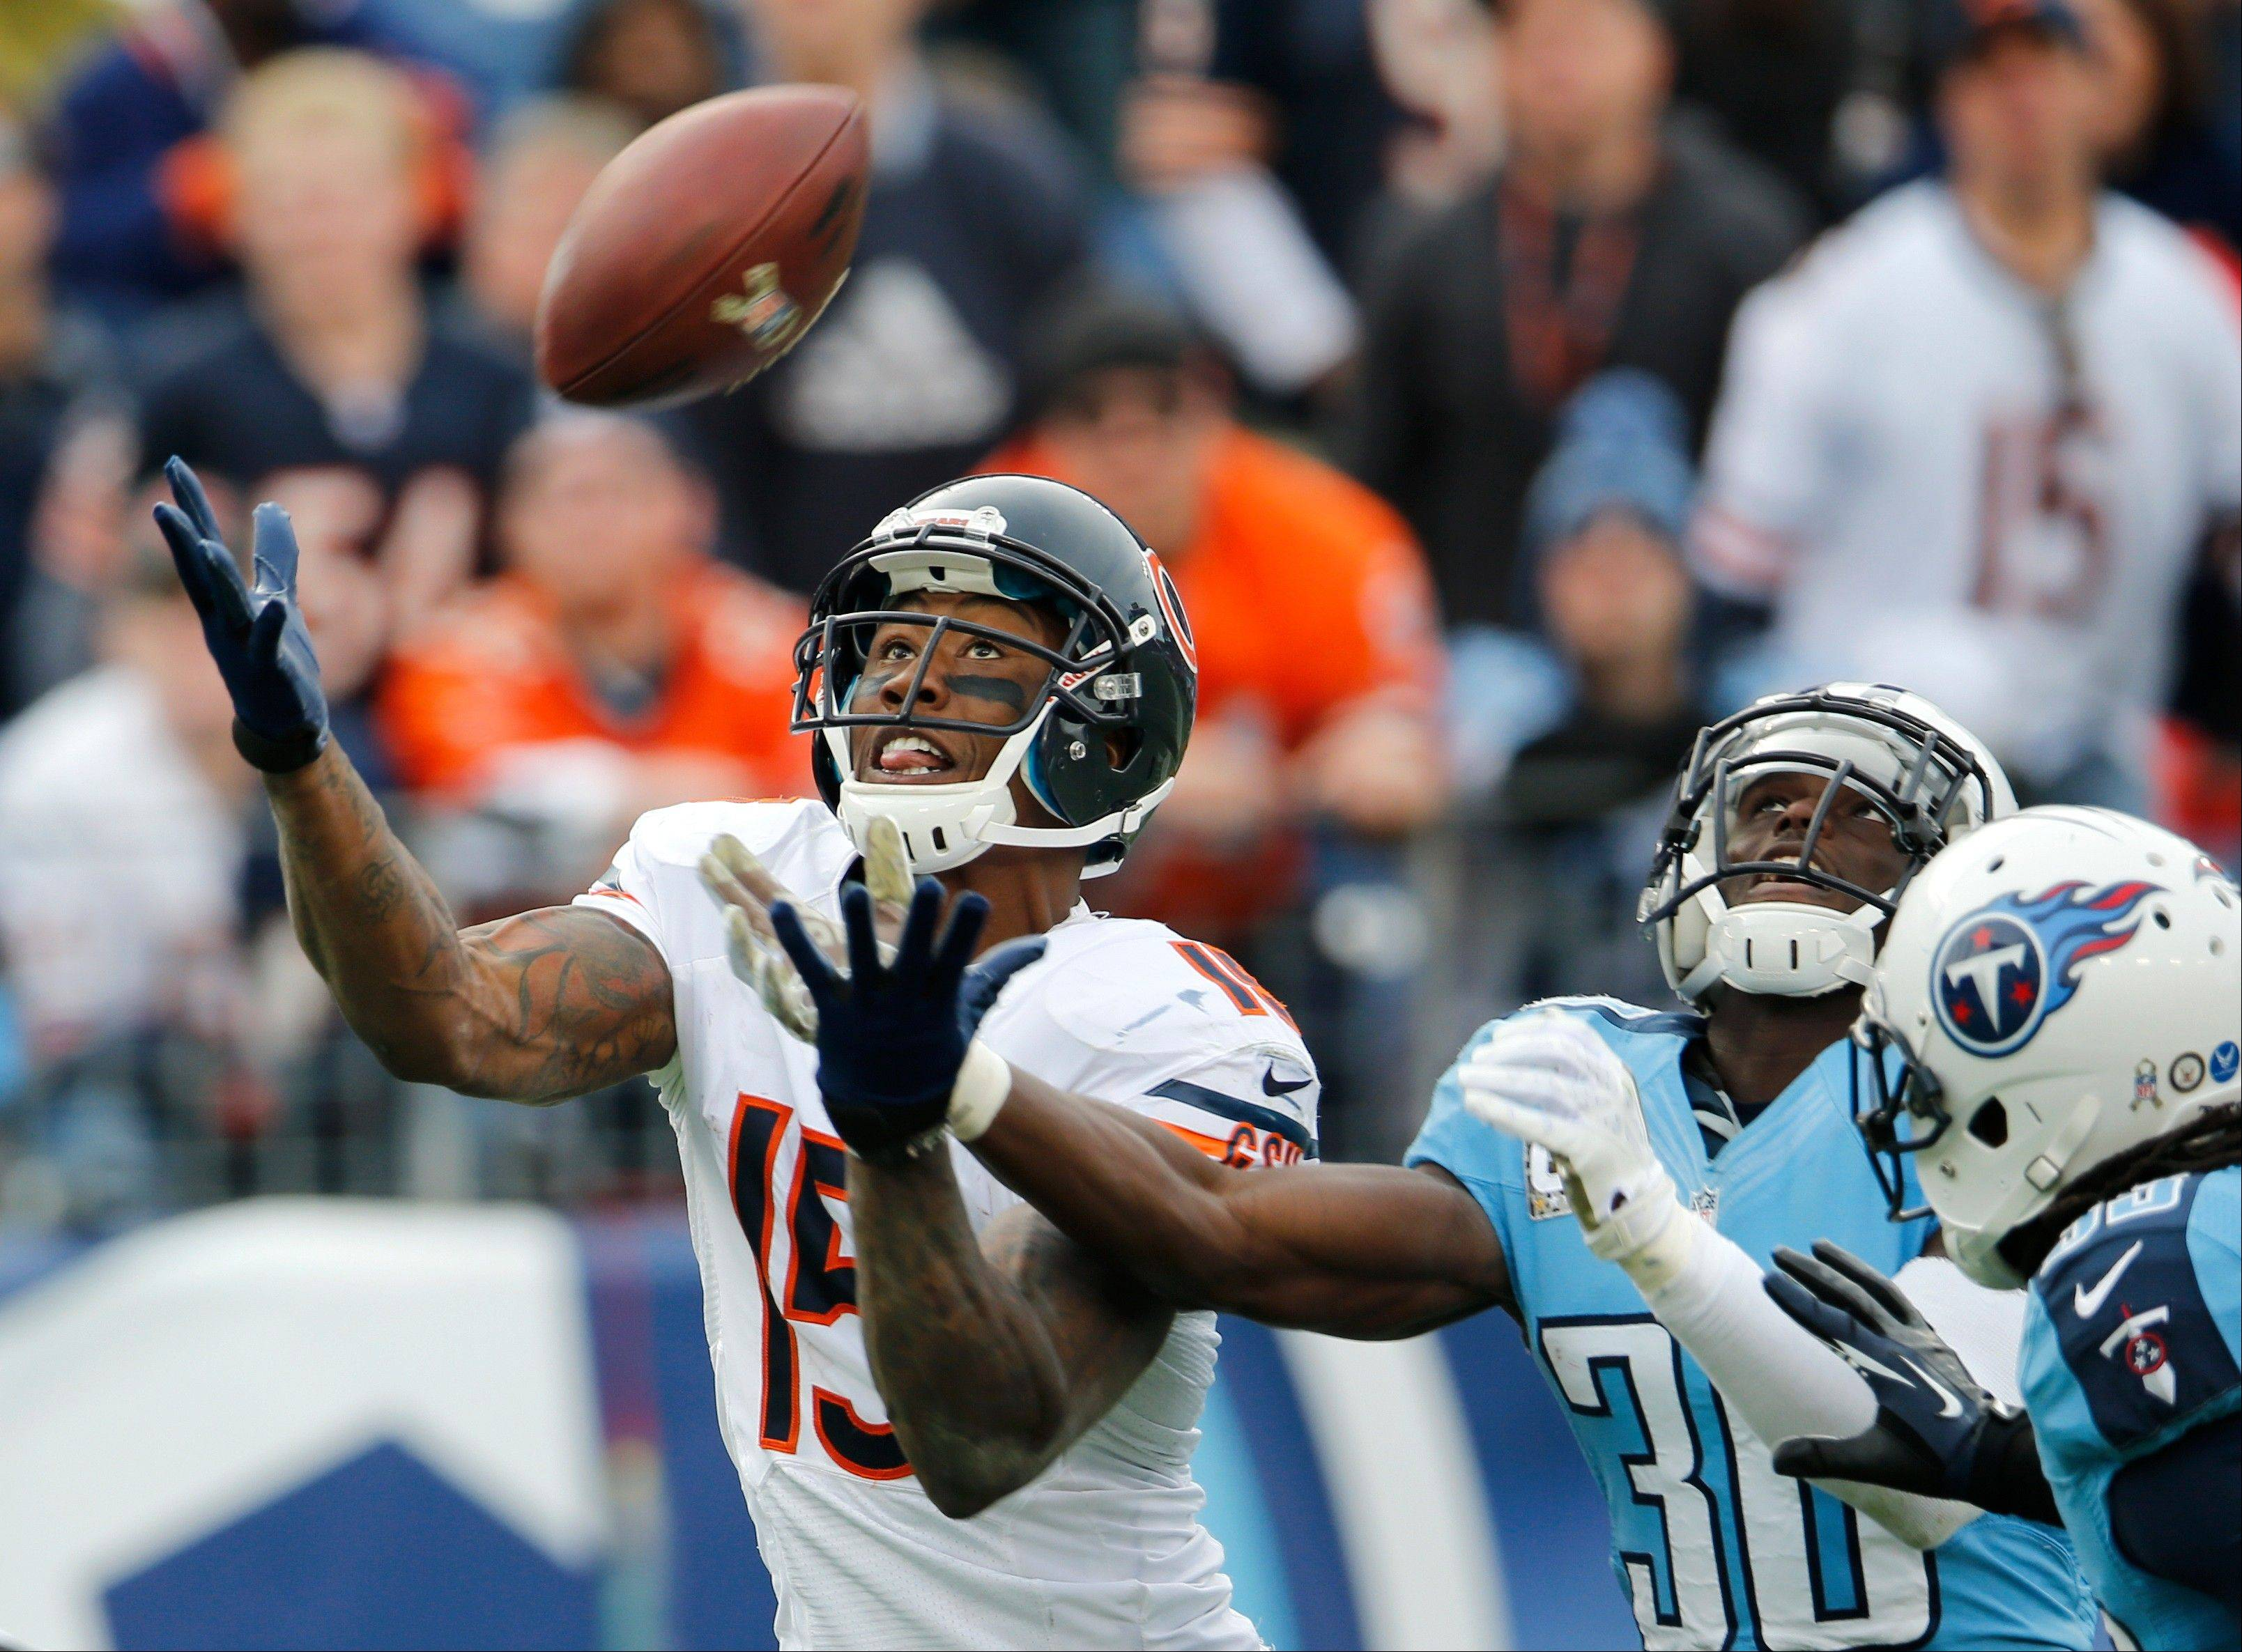 Bears wide receiver Brandon Marshallcatches a 39-yard touchdown pass ahead of Tennessee Titans cornerback Jason McCourty in the fourth quarter Sunday in Nashville, Tenn. The Bears beat the Titans 51-20.